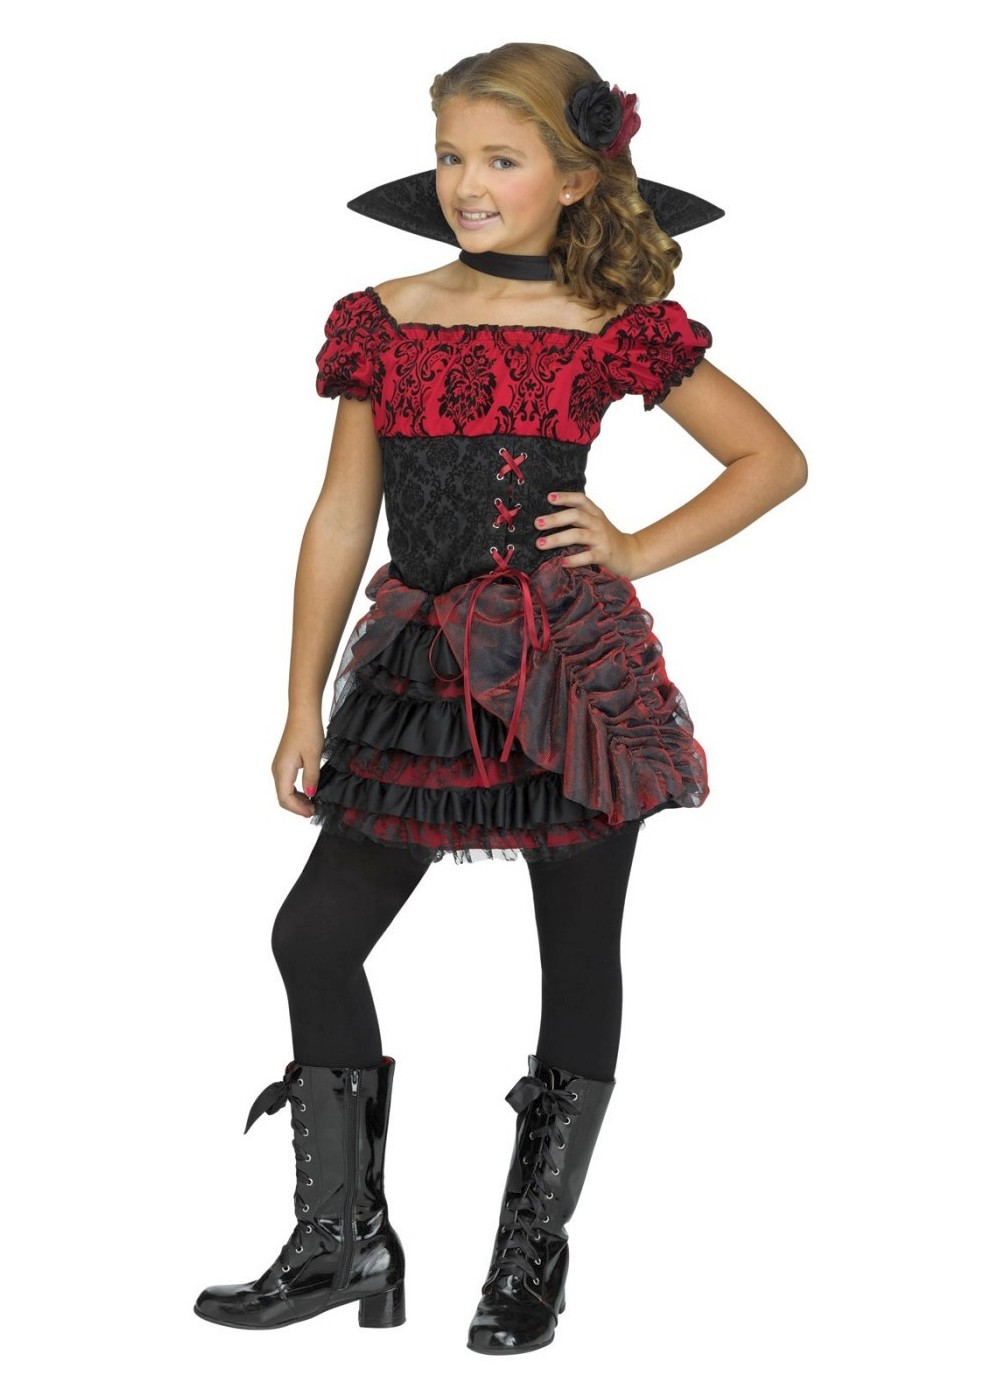 Gothic V&iress Costume  sc 1 st  Wonder Costumes & Vampire Costumes - Boys Girls Women u0026 Men Hallowen Costume